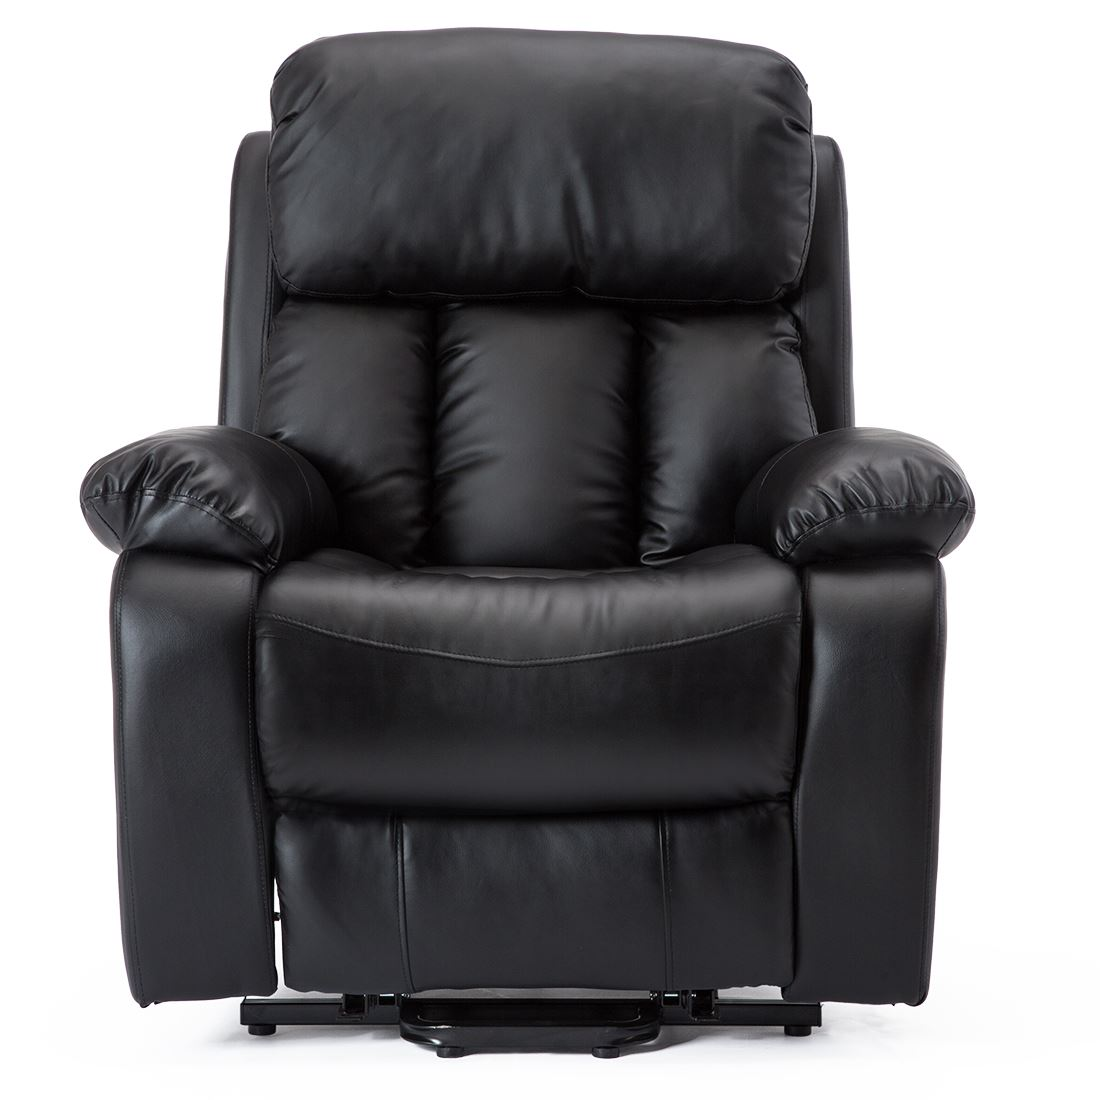 CHESTER-ELECTRIC-RISE-LEATHER-RECLINER-POWER-ARMCHAIR-HEATED-MASSAGE-SOFA-CHAIR thumbnail 4